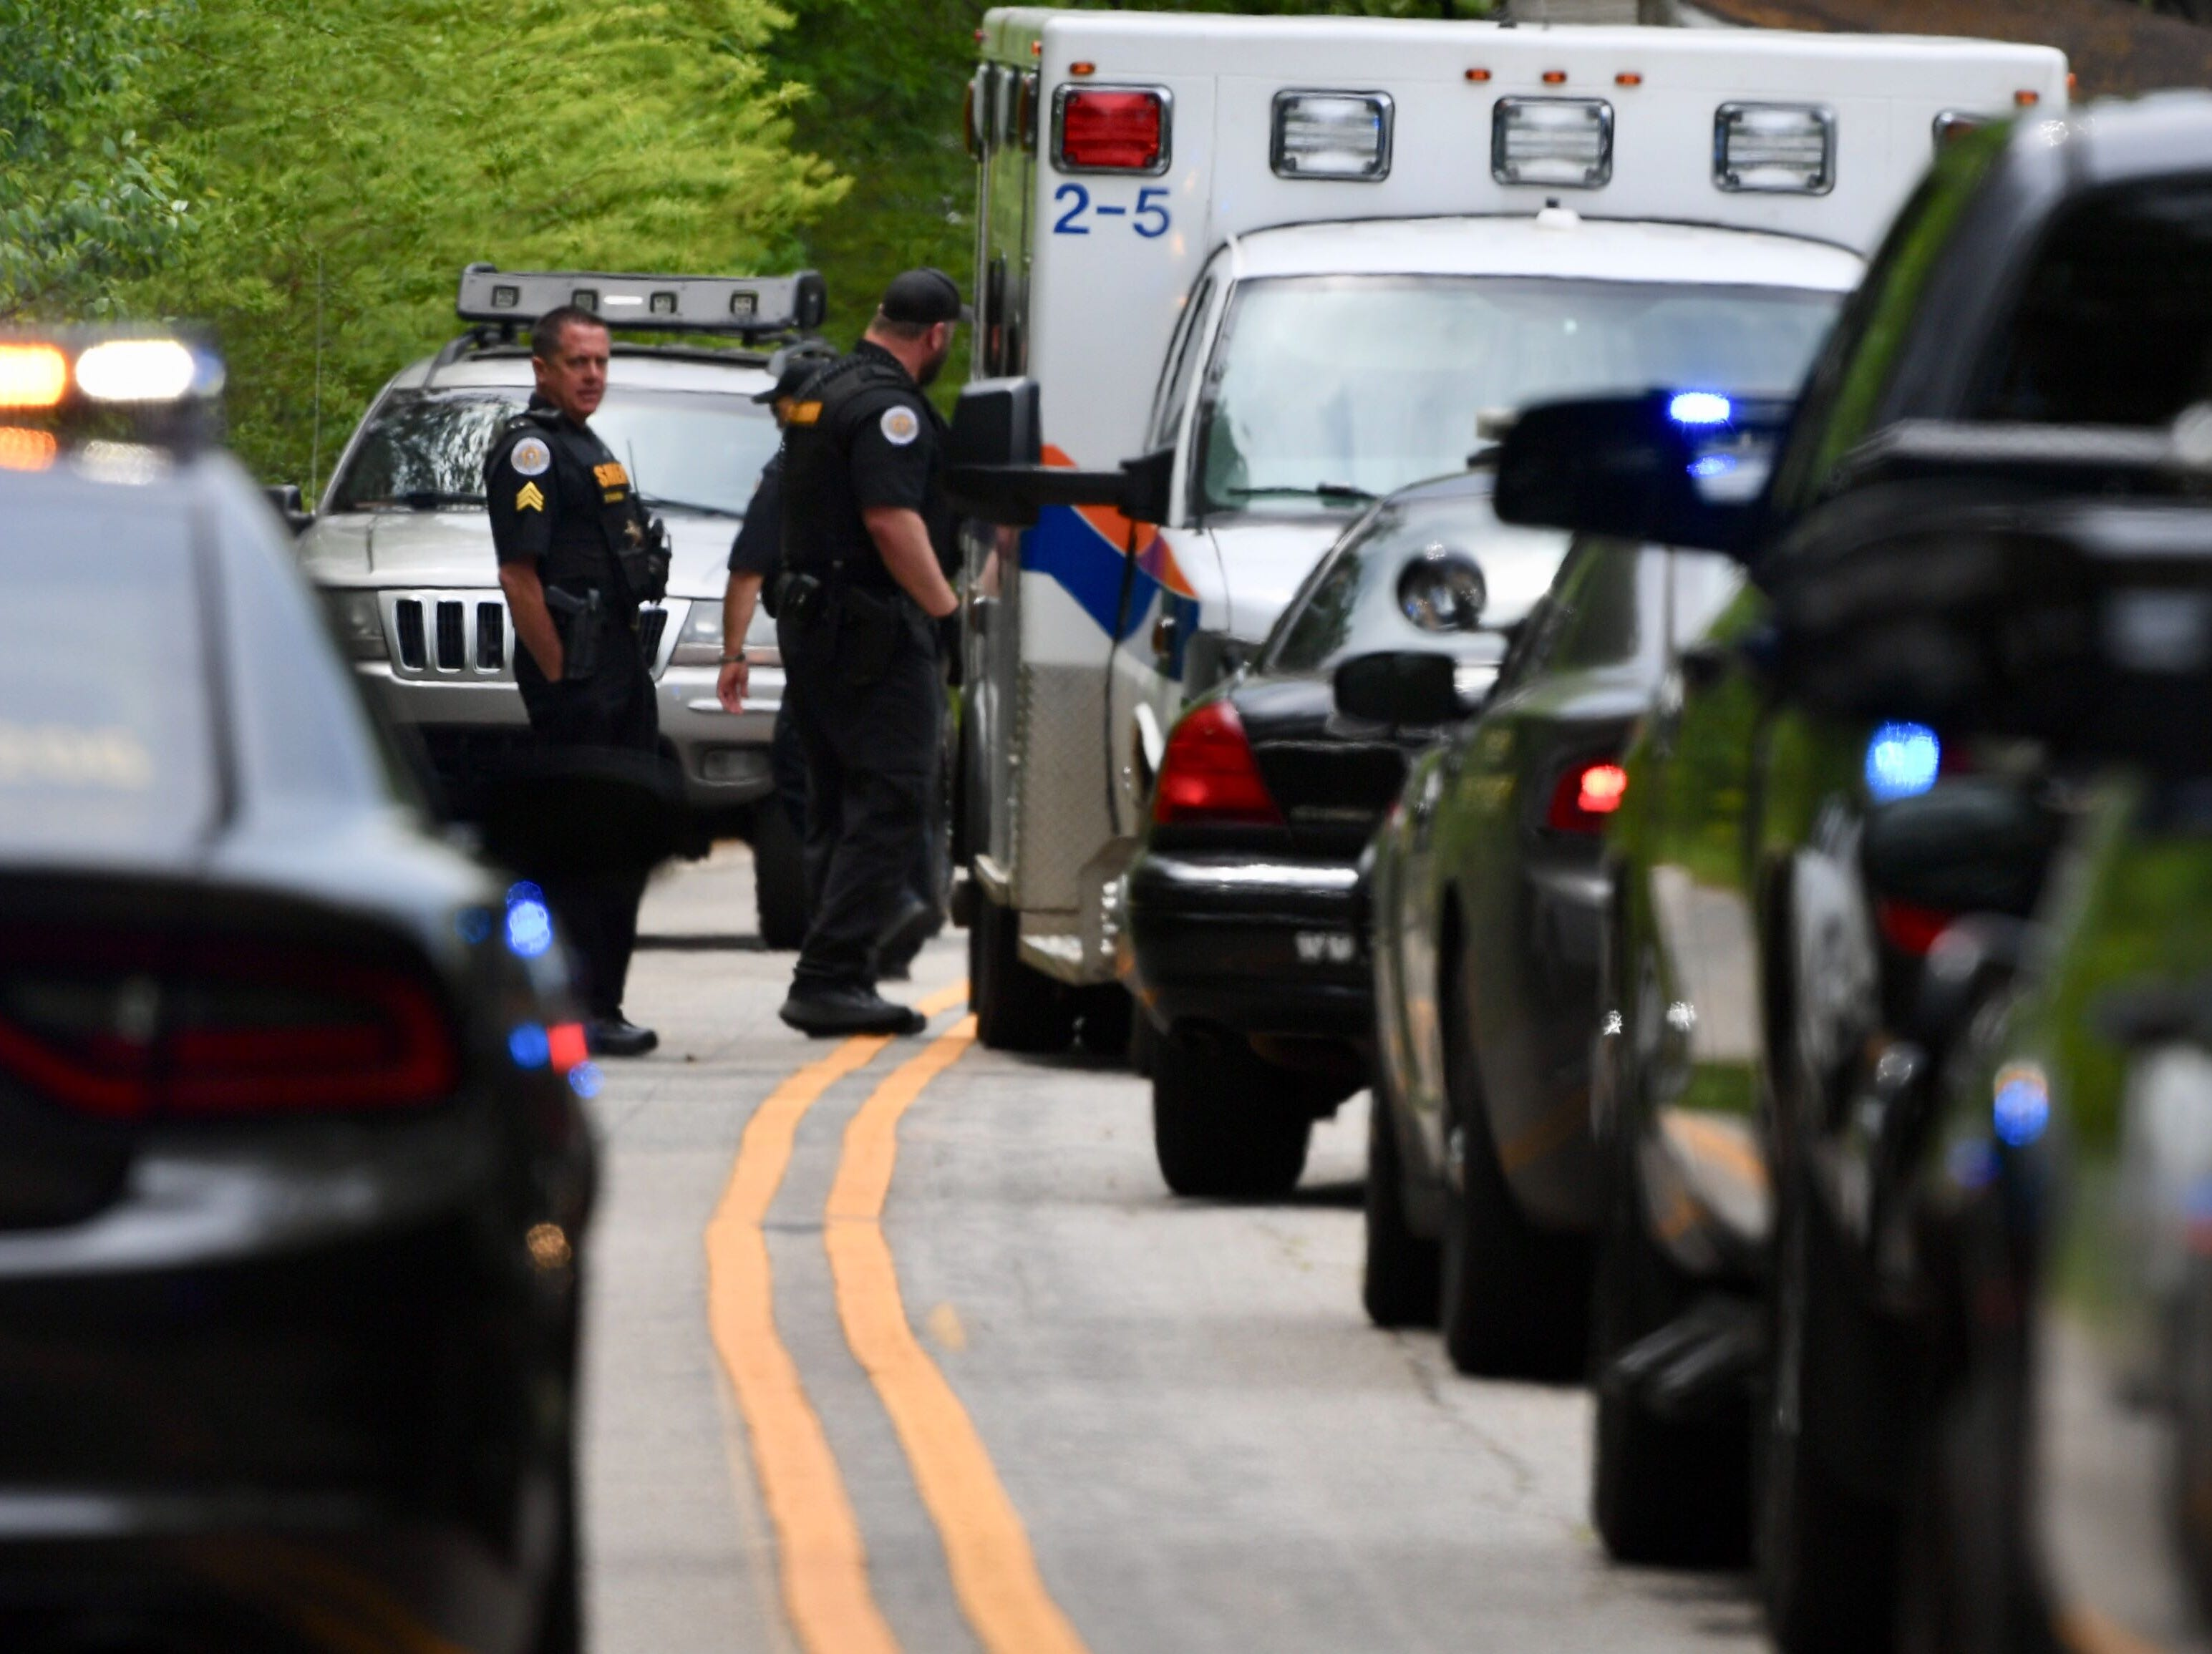 Anderson County Sheriff's Office deputies say one person was shot after an apparent carjacking attempt in Belton on Thursday, April 25, 2019.